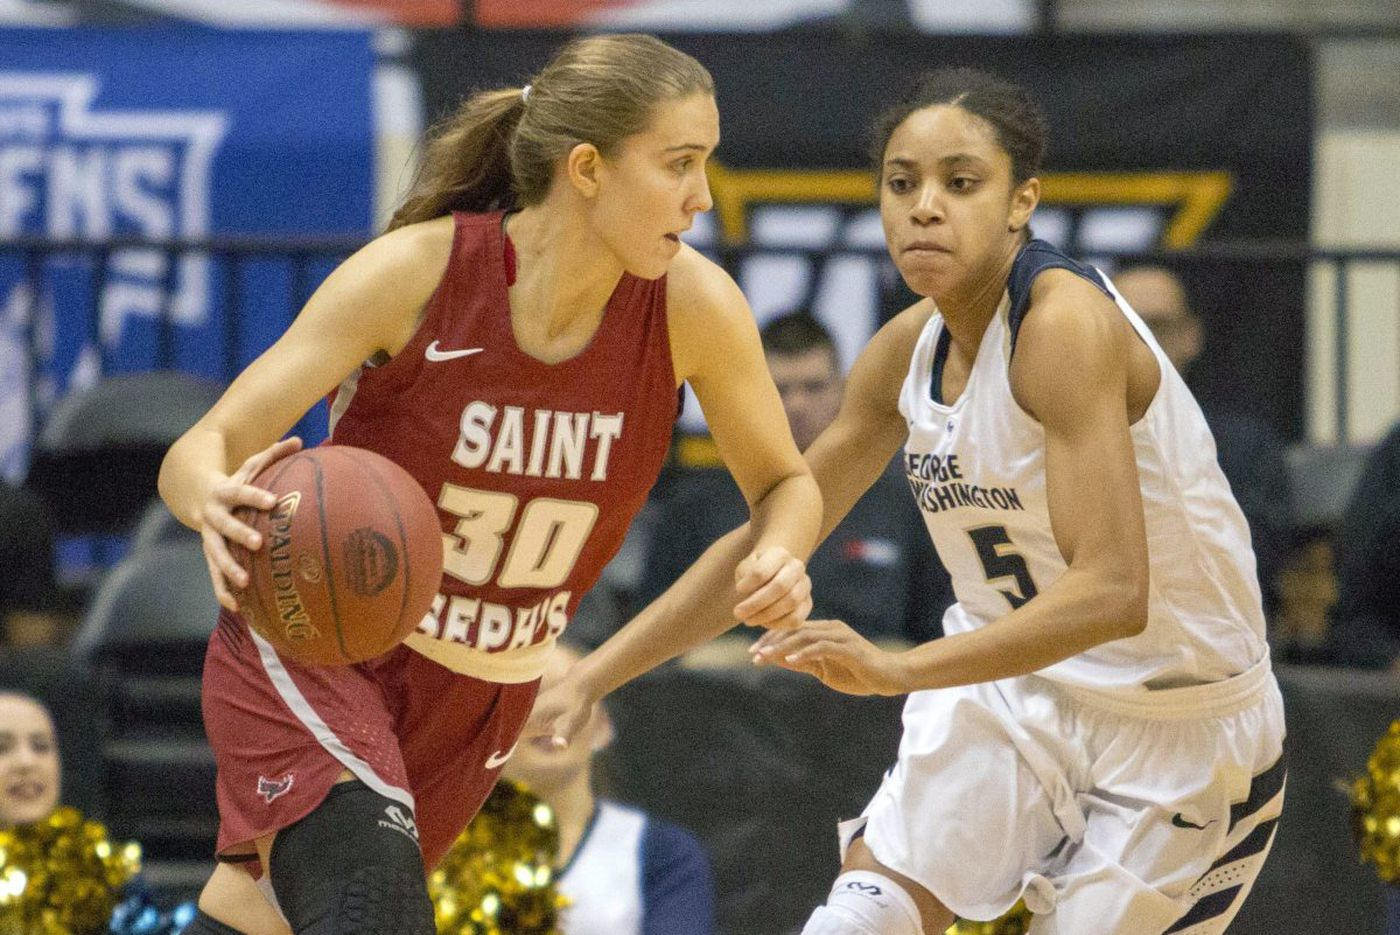 St. Joseph's women lose to George Washington in A-10 final